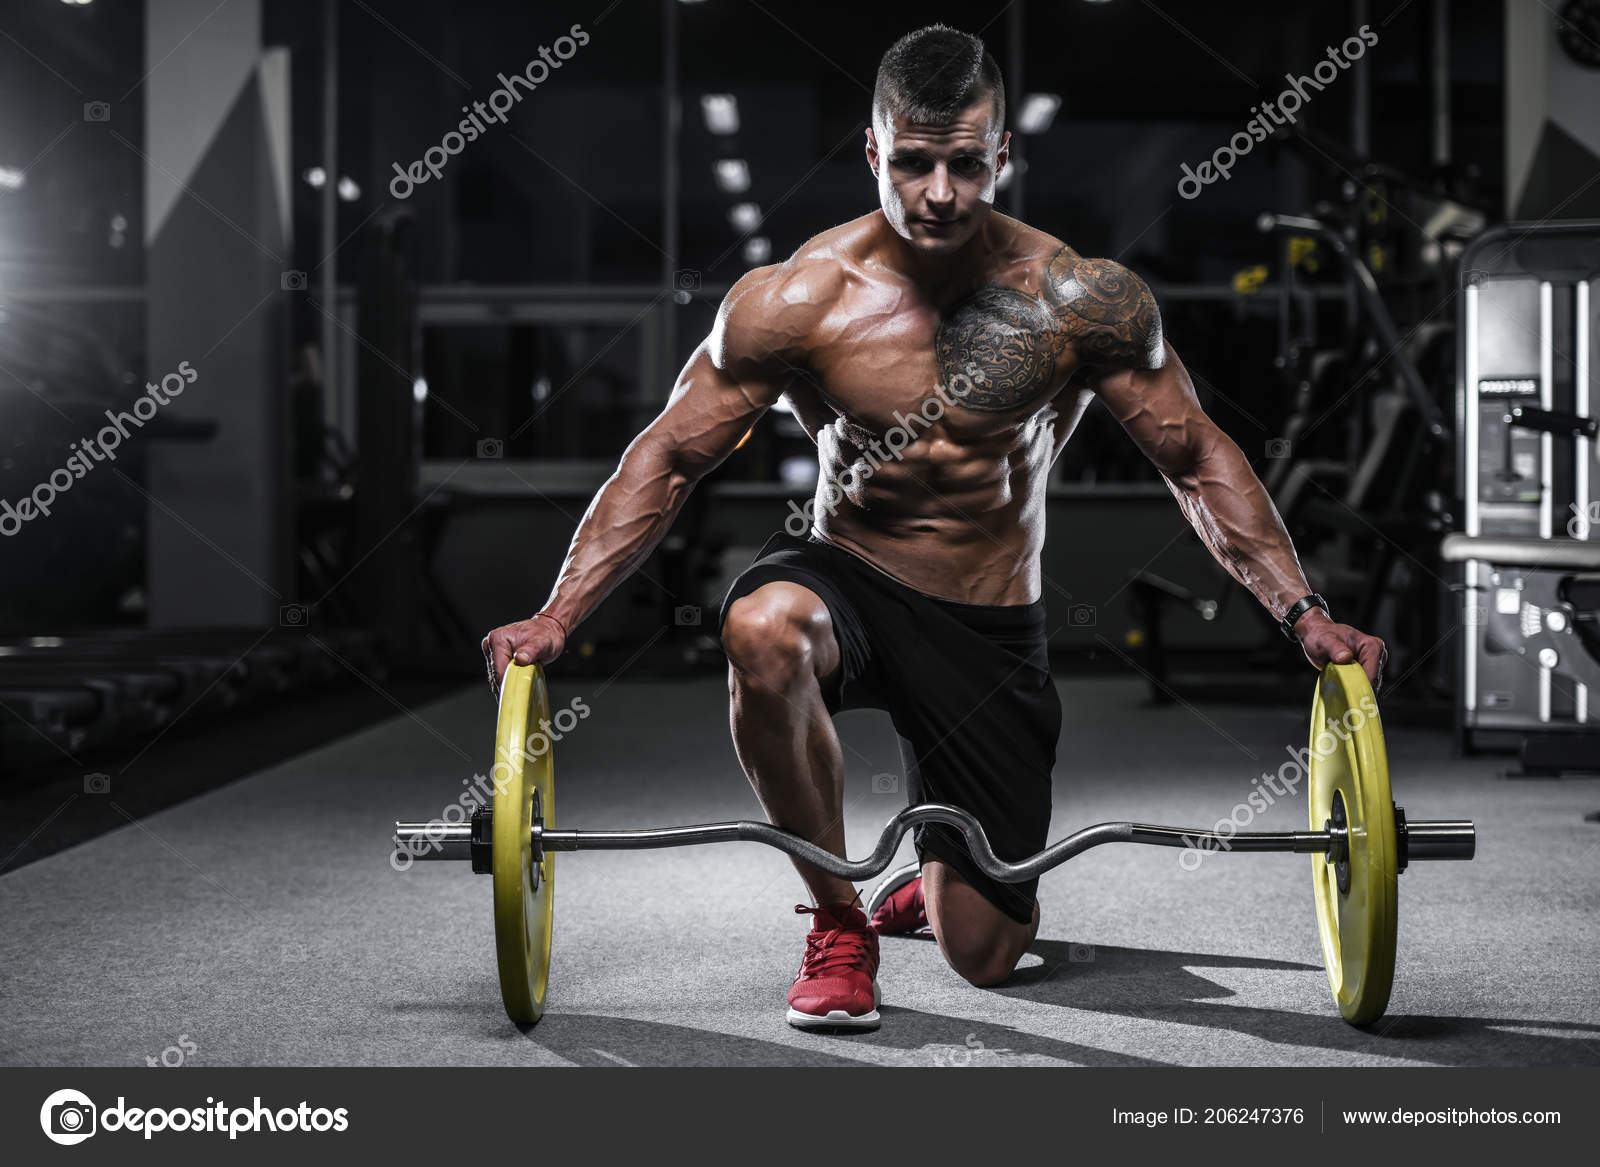 cd534ad29f6 Handsome strong bodybuilder athletic man pumping up muscles workout  bodybuilding concept background - muscular bodybuilder handsome men doing  exercises in ...